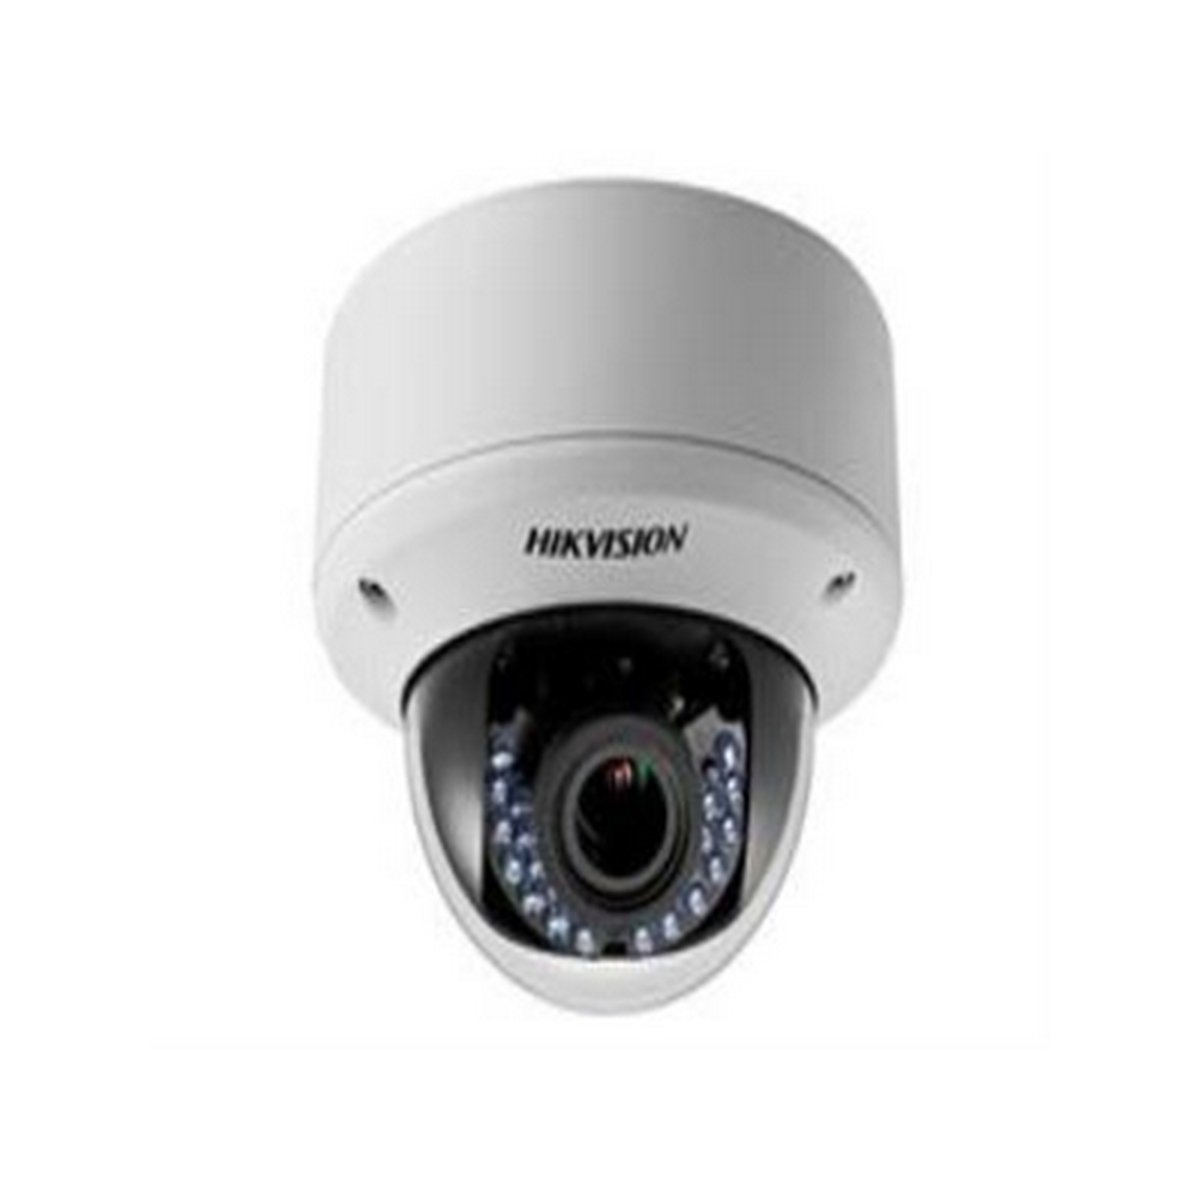 DS-2CE56D5T-AVPIR3 HIKVISION Outdoor IR Dome, HD1080p, 2.8-12mm, 40m IR Day/Night, True WDR, Smart IR, UTC Menu, IP66, 24VAC/12VDC